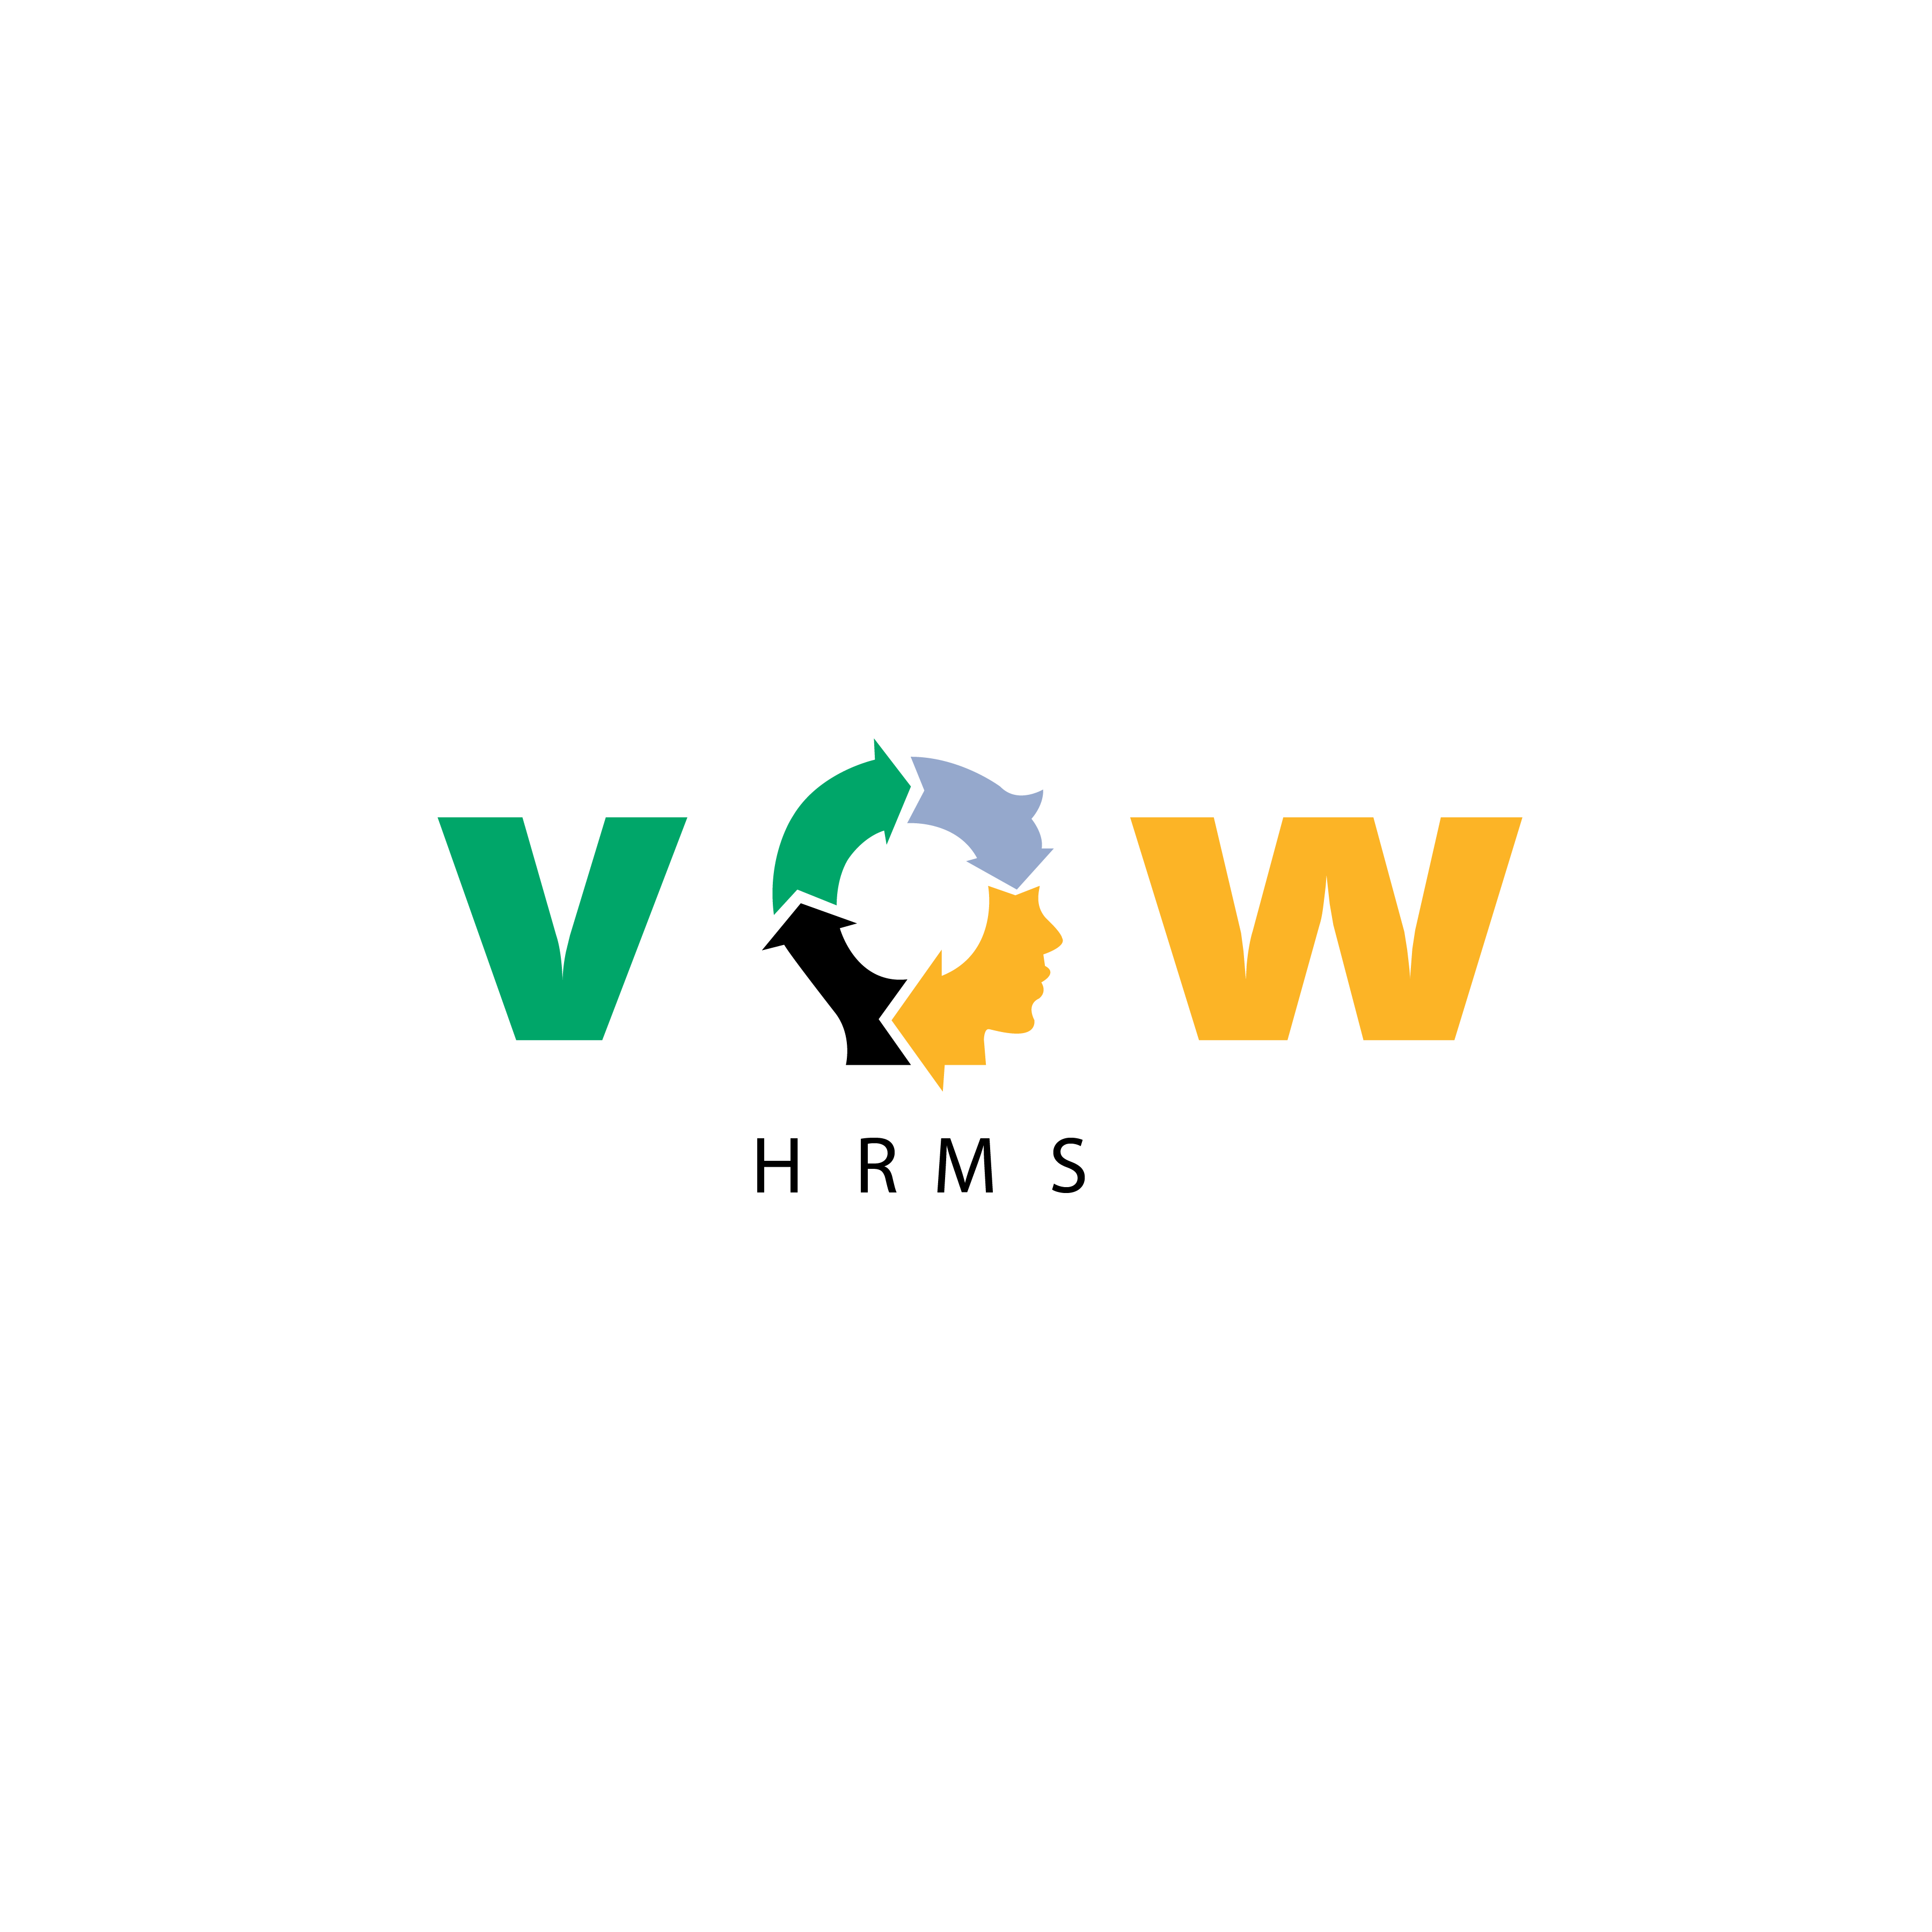 vow hrms